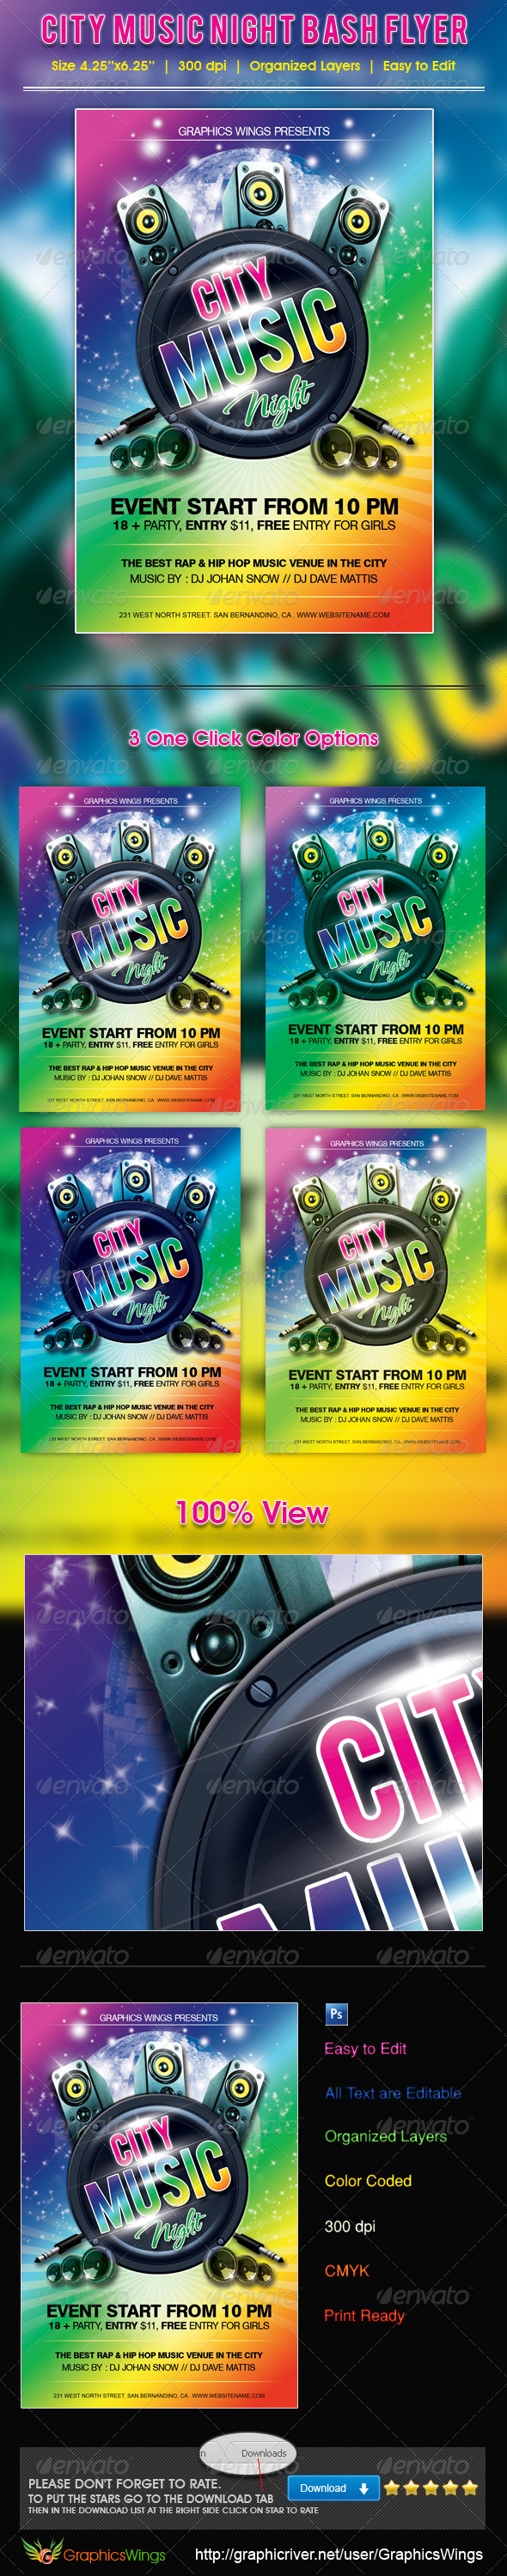 City Music Night Bash Flyer Template - Clubs & Parties Events